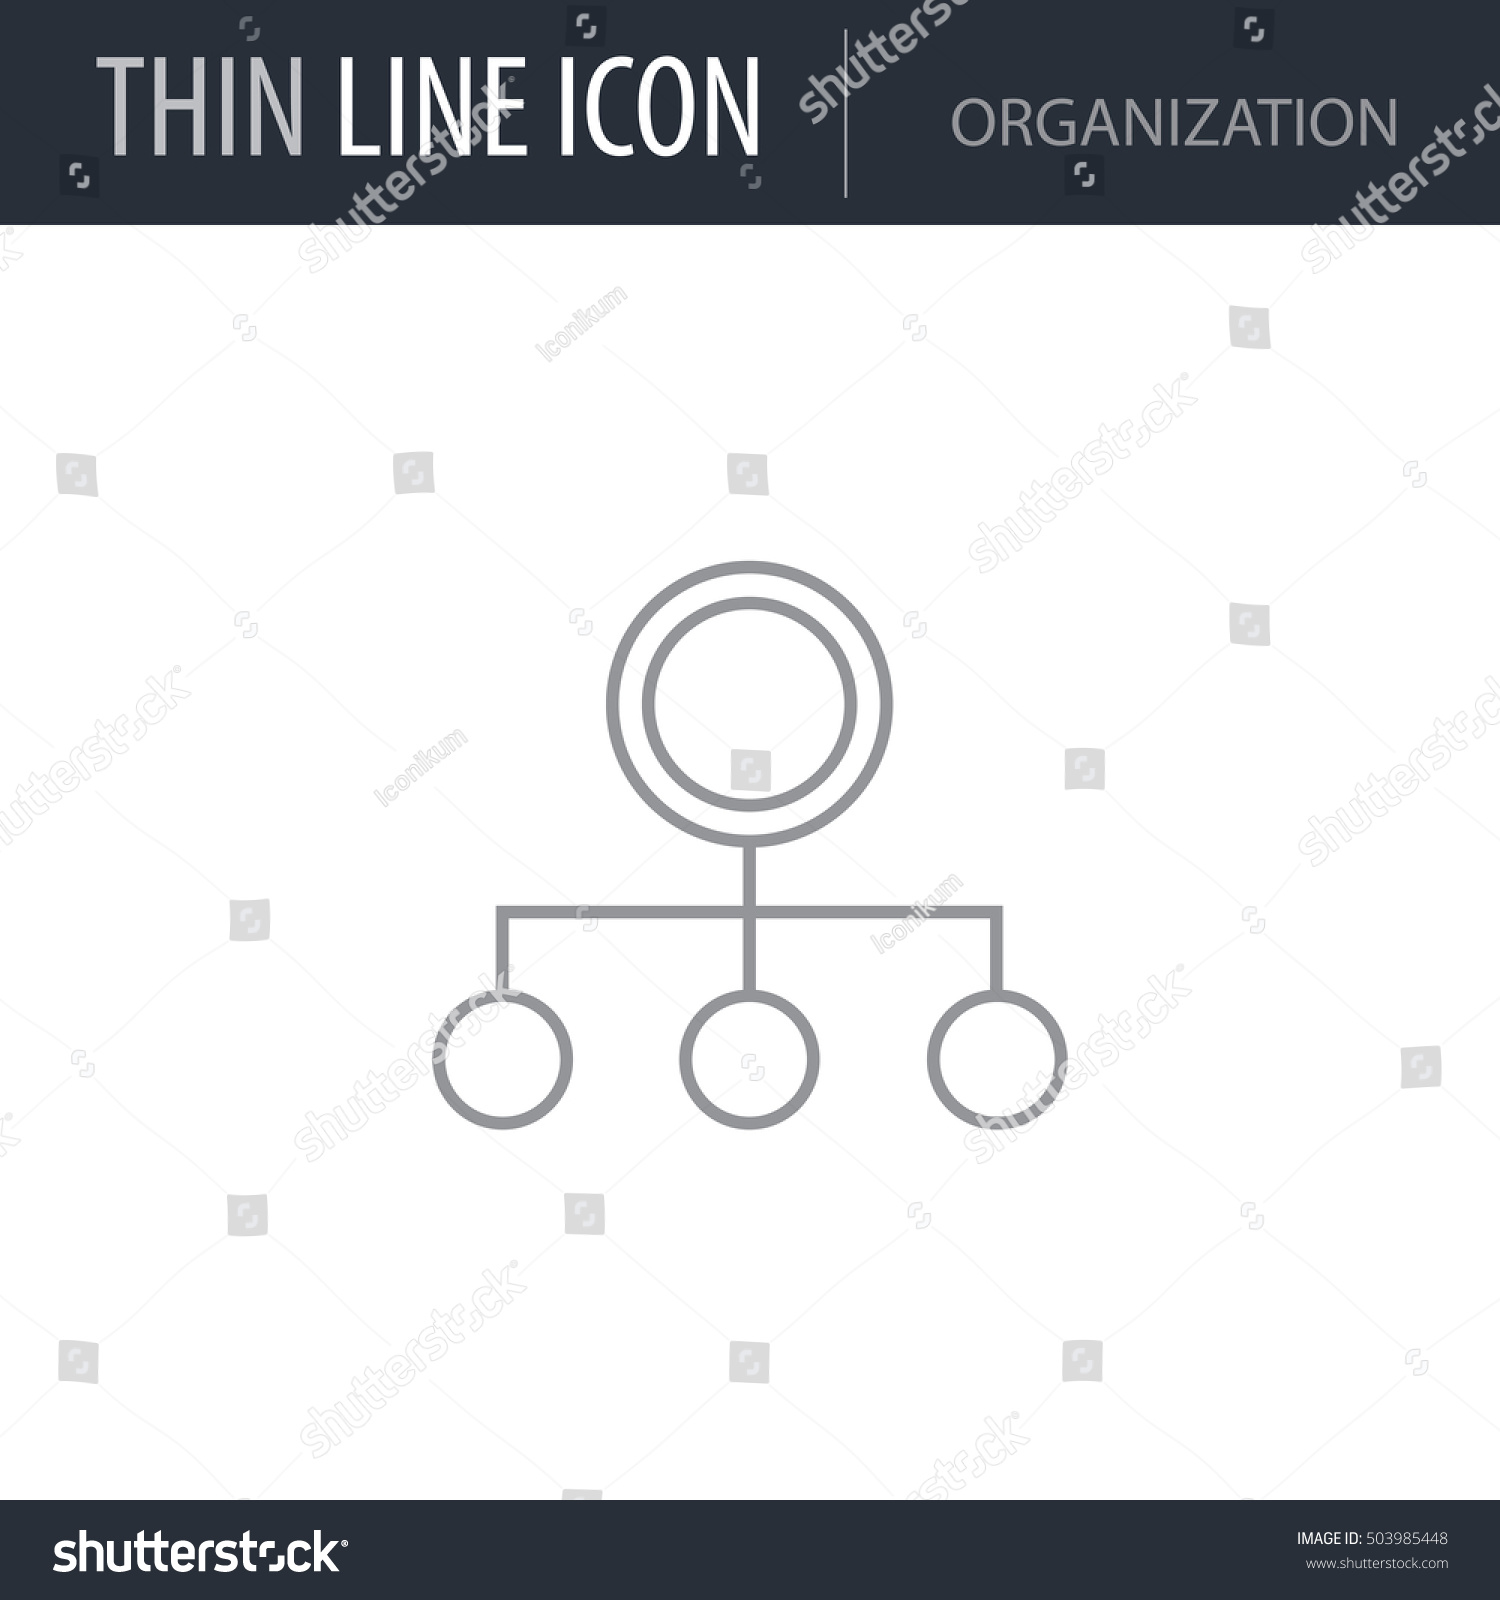 Symbol Organization Thin Line Icon Business Stock Vector 503985448